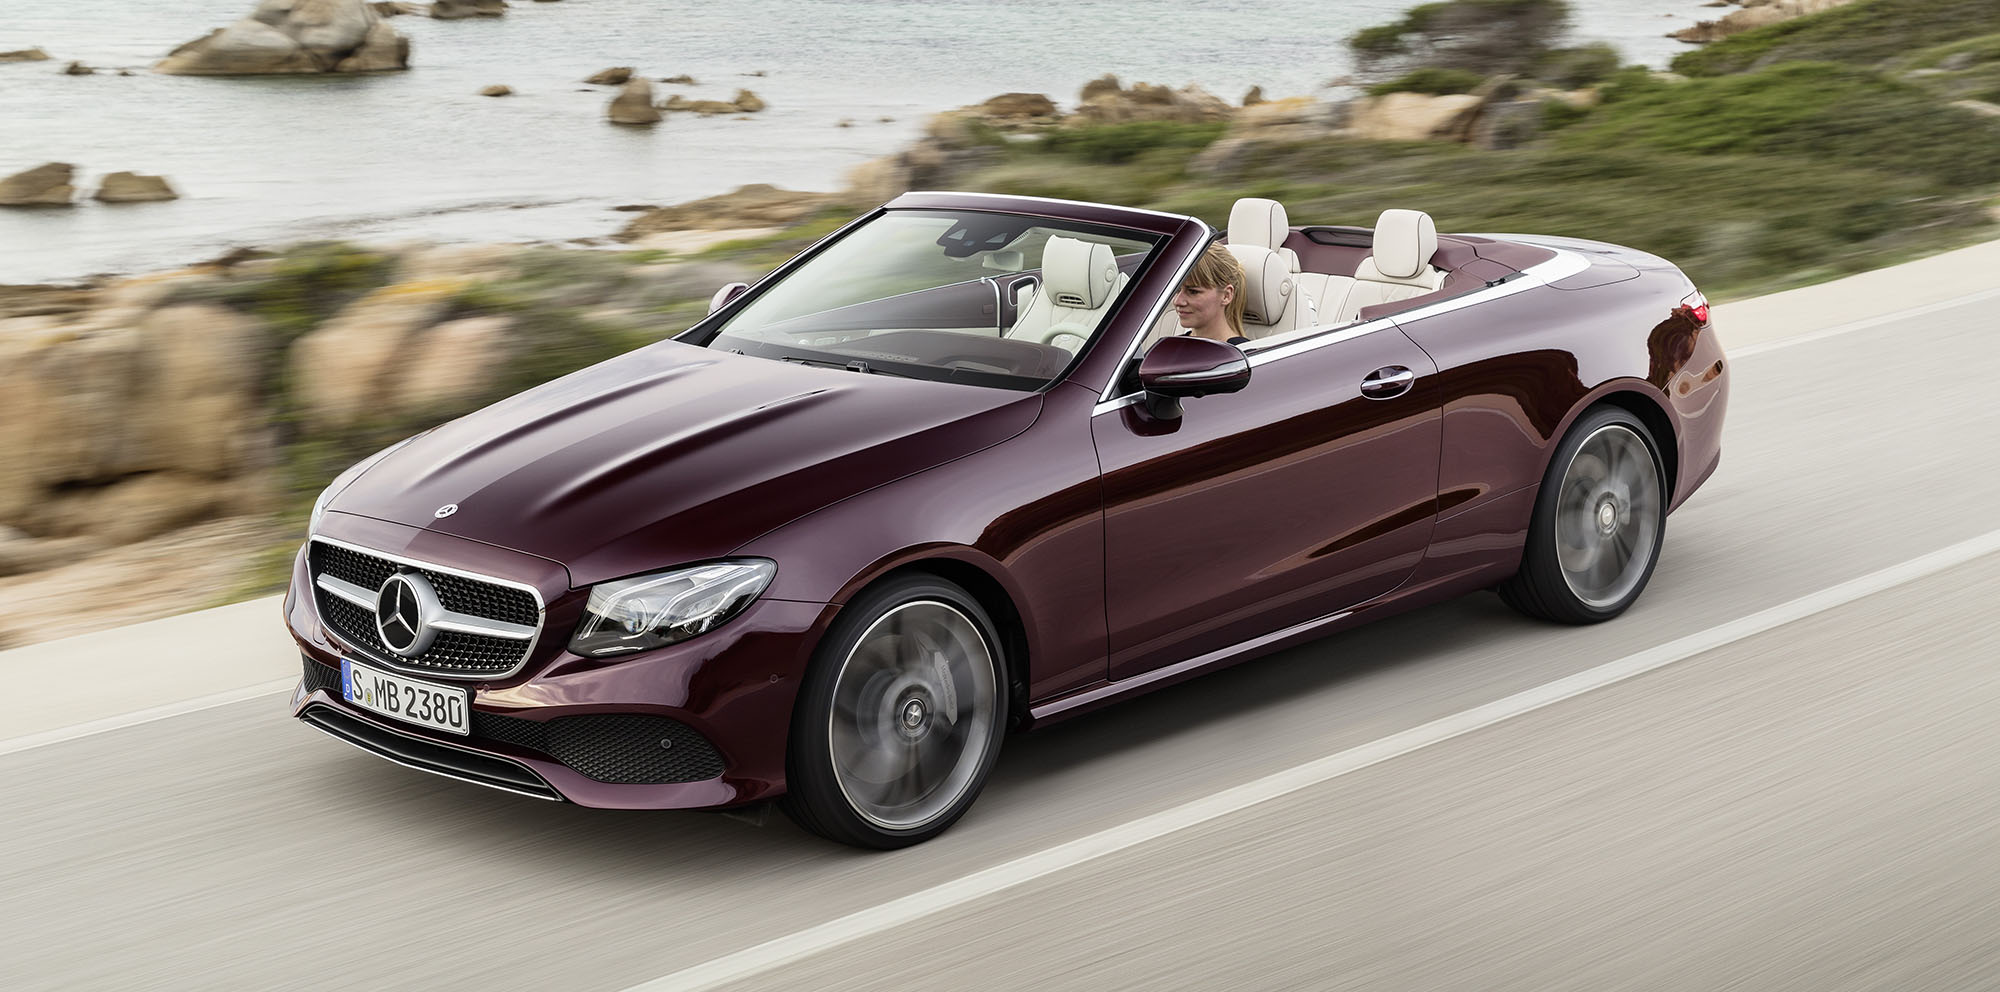 2017 mercedes benz e class cabriolet revealed photos 1. Black Bedroom Furniture Sets. Home Design Ideas